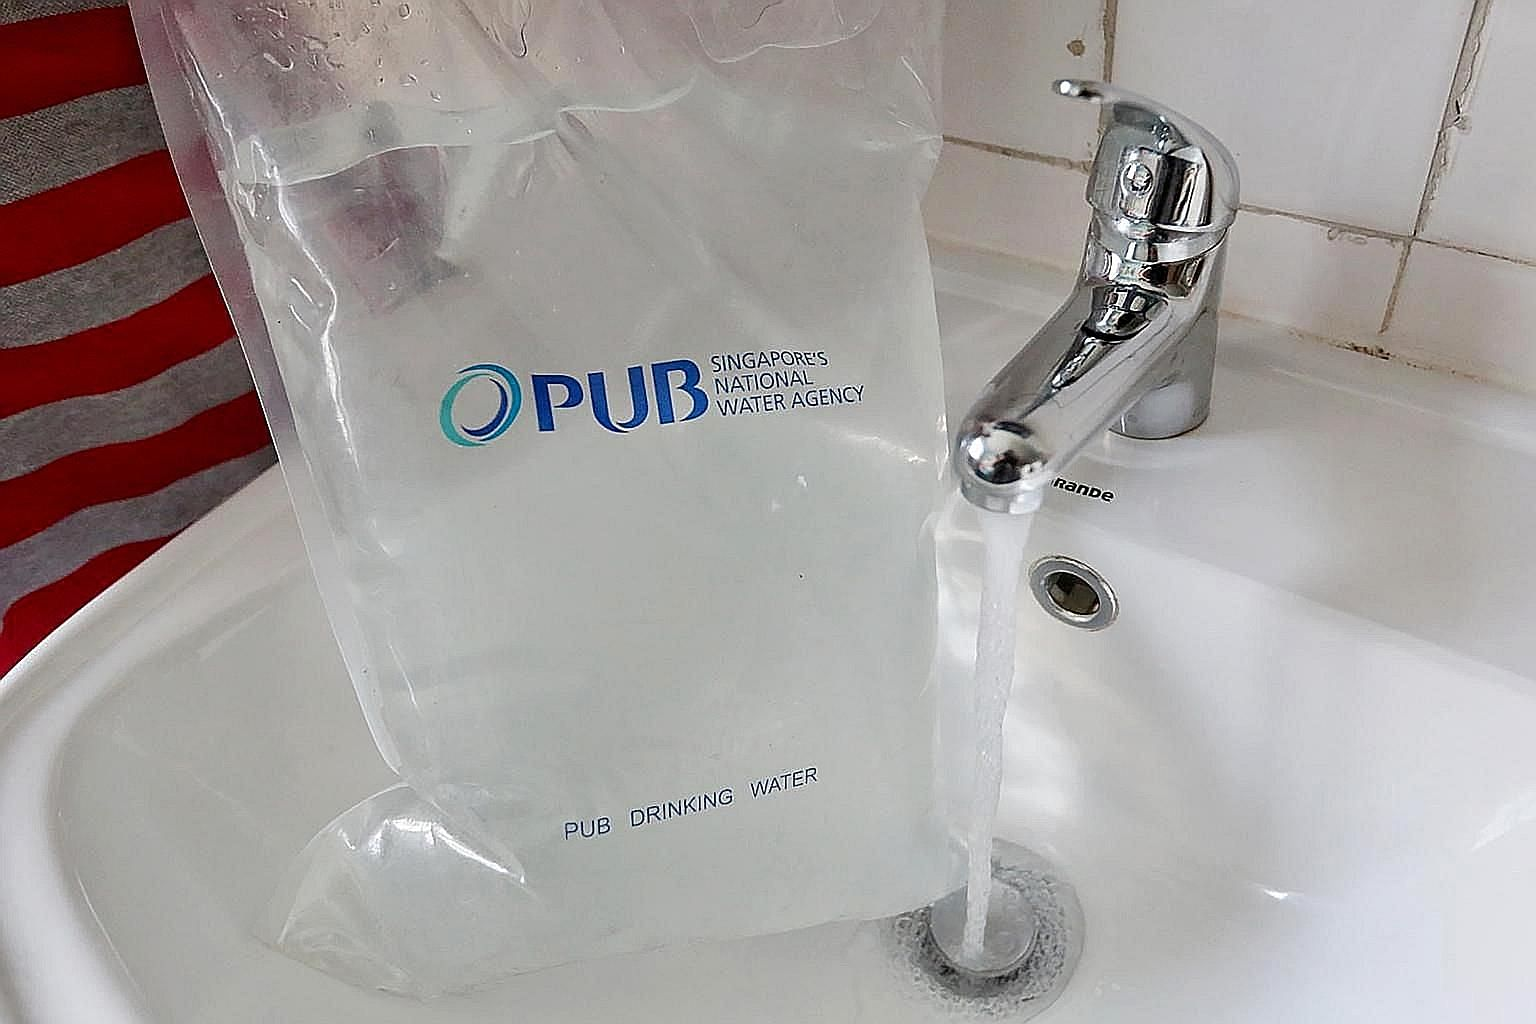 The PUB confirmed that water quality at tap points in Block 635 Ang Mo Kio Avenue 6 returned to normal after the water tanks were washed and chlorinated last Wednesday to remove traces of hydrocarbons - compounds that can be found in anti-mosquito oi